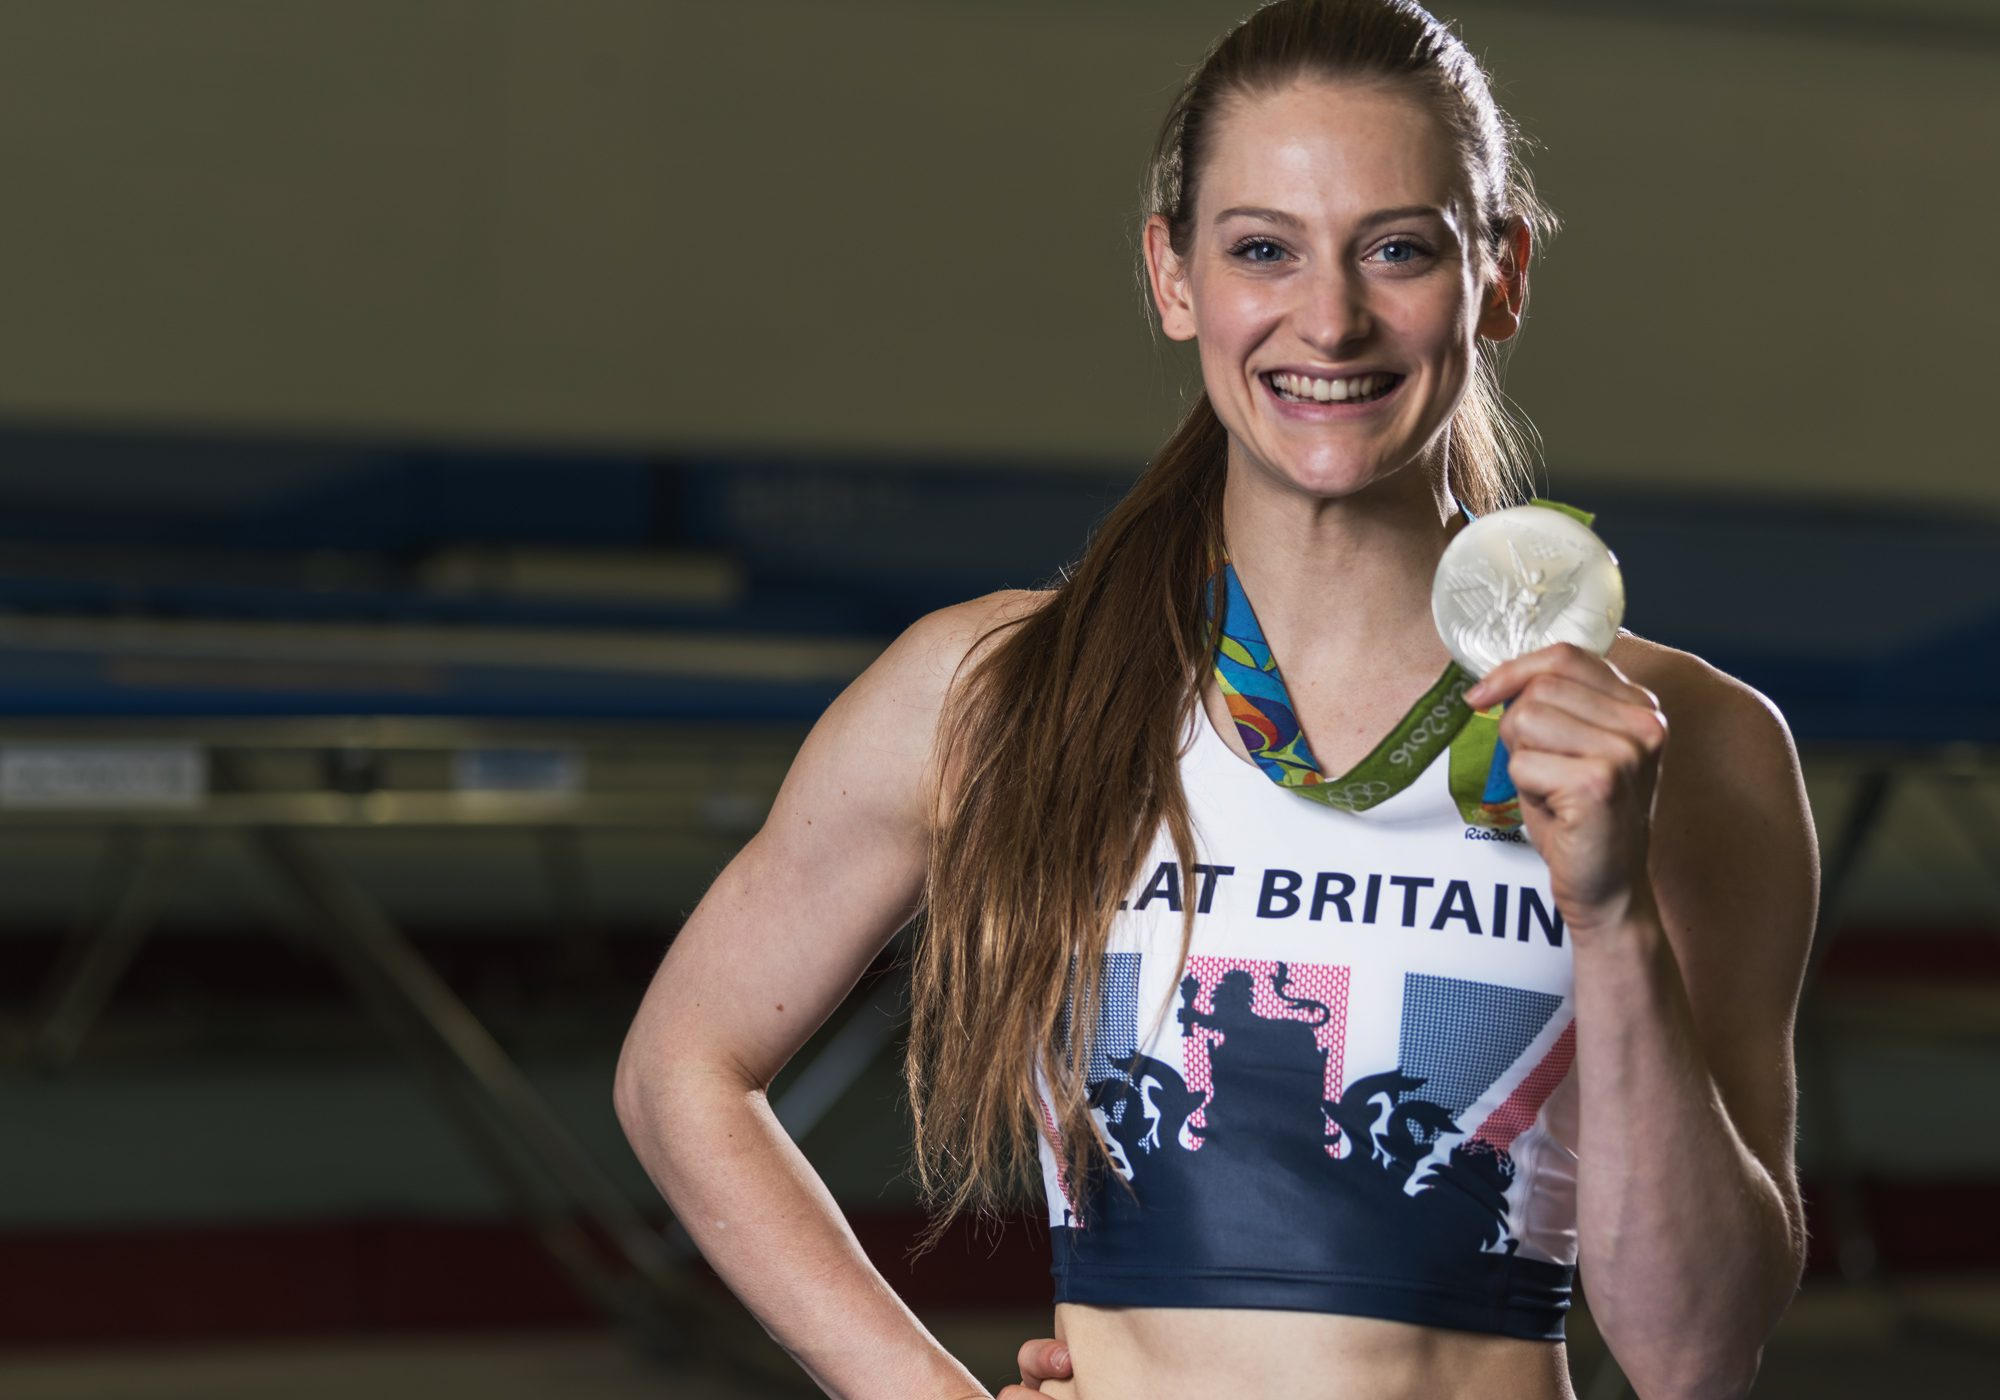 Bryony Page shows her silver medal (Image by Neil Shearer)